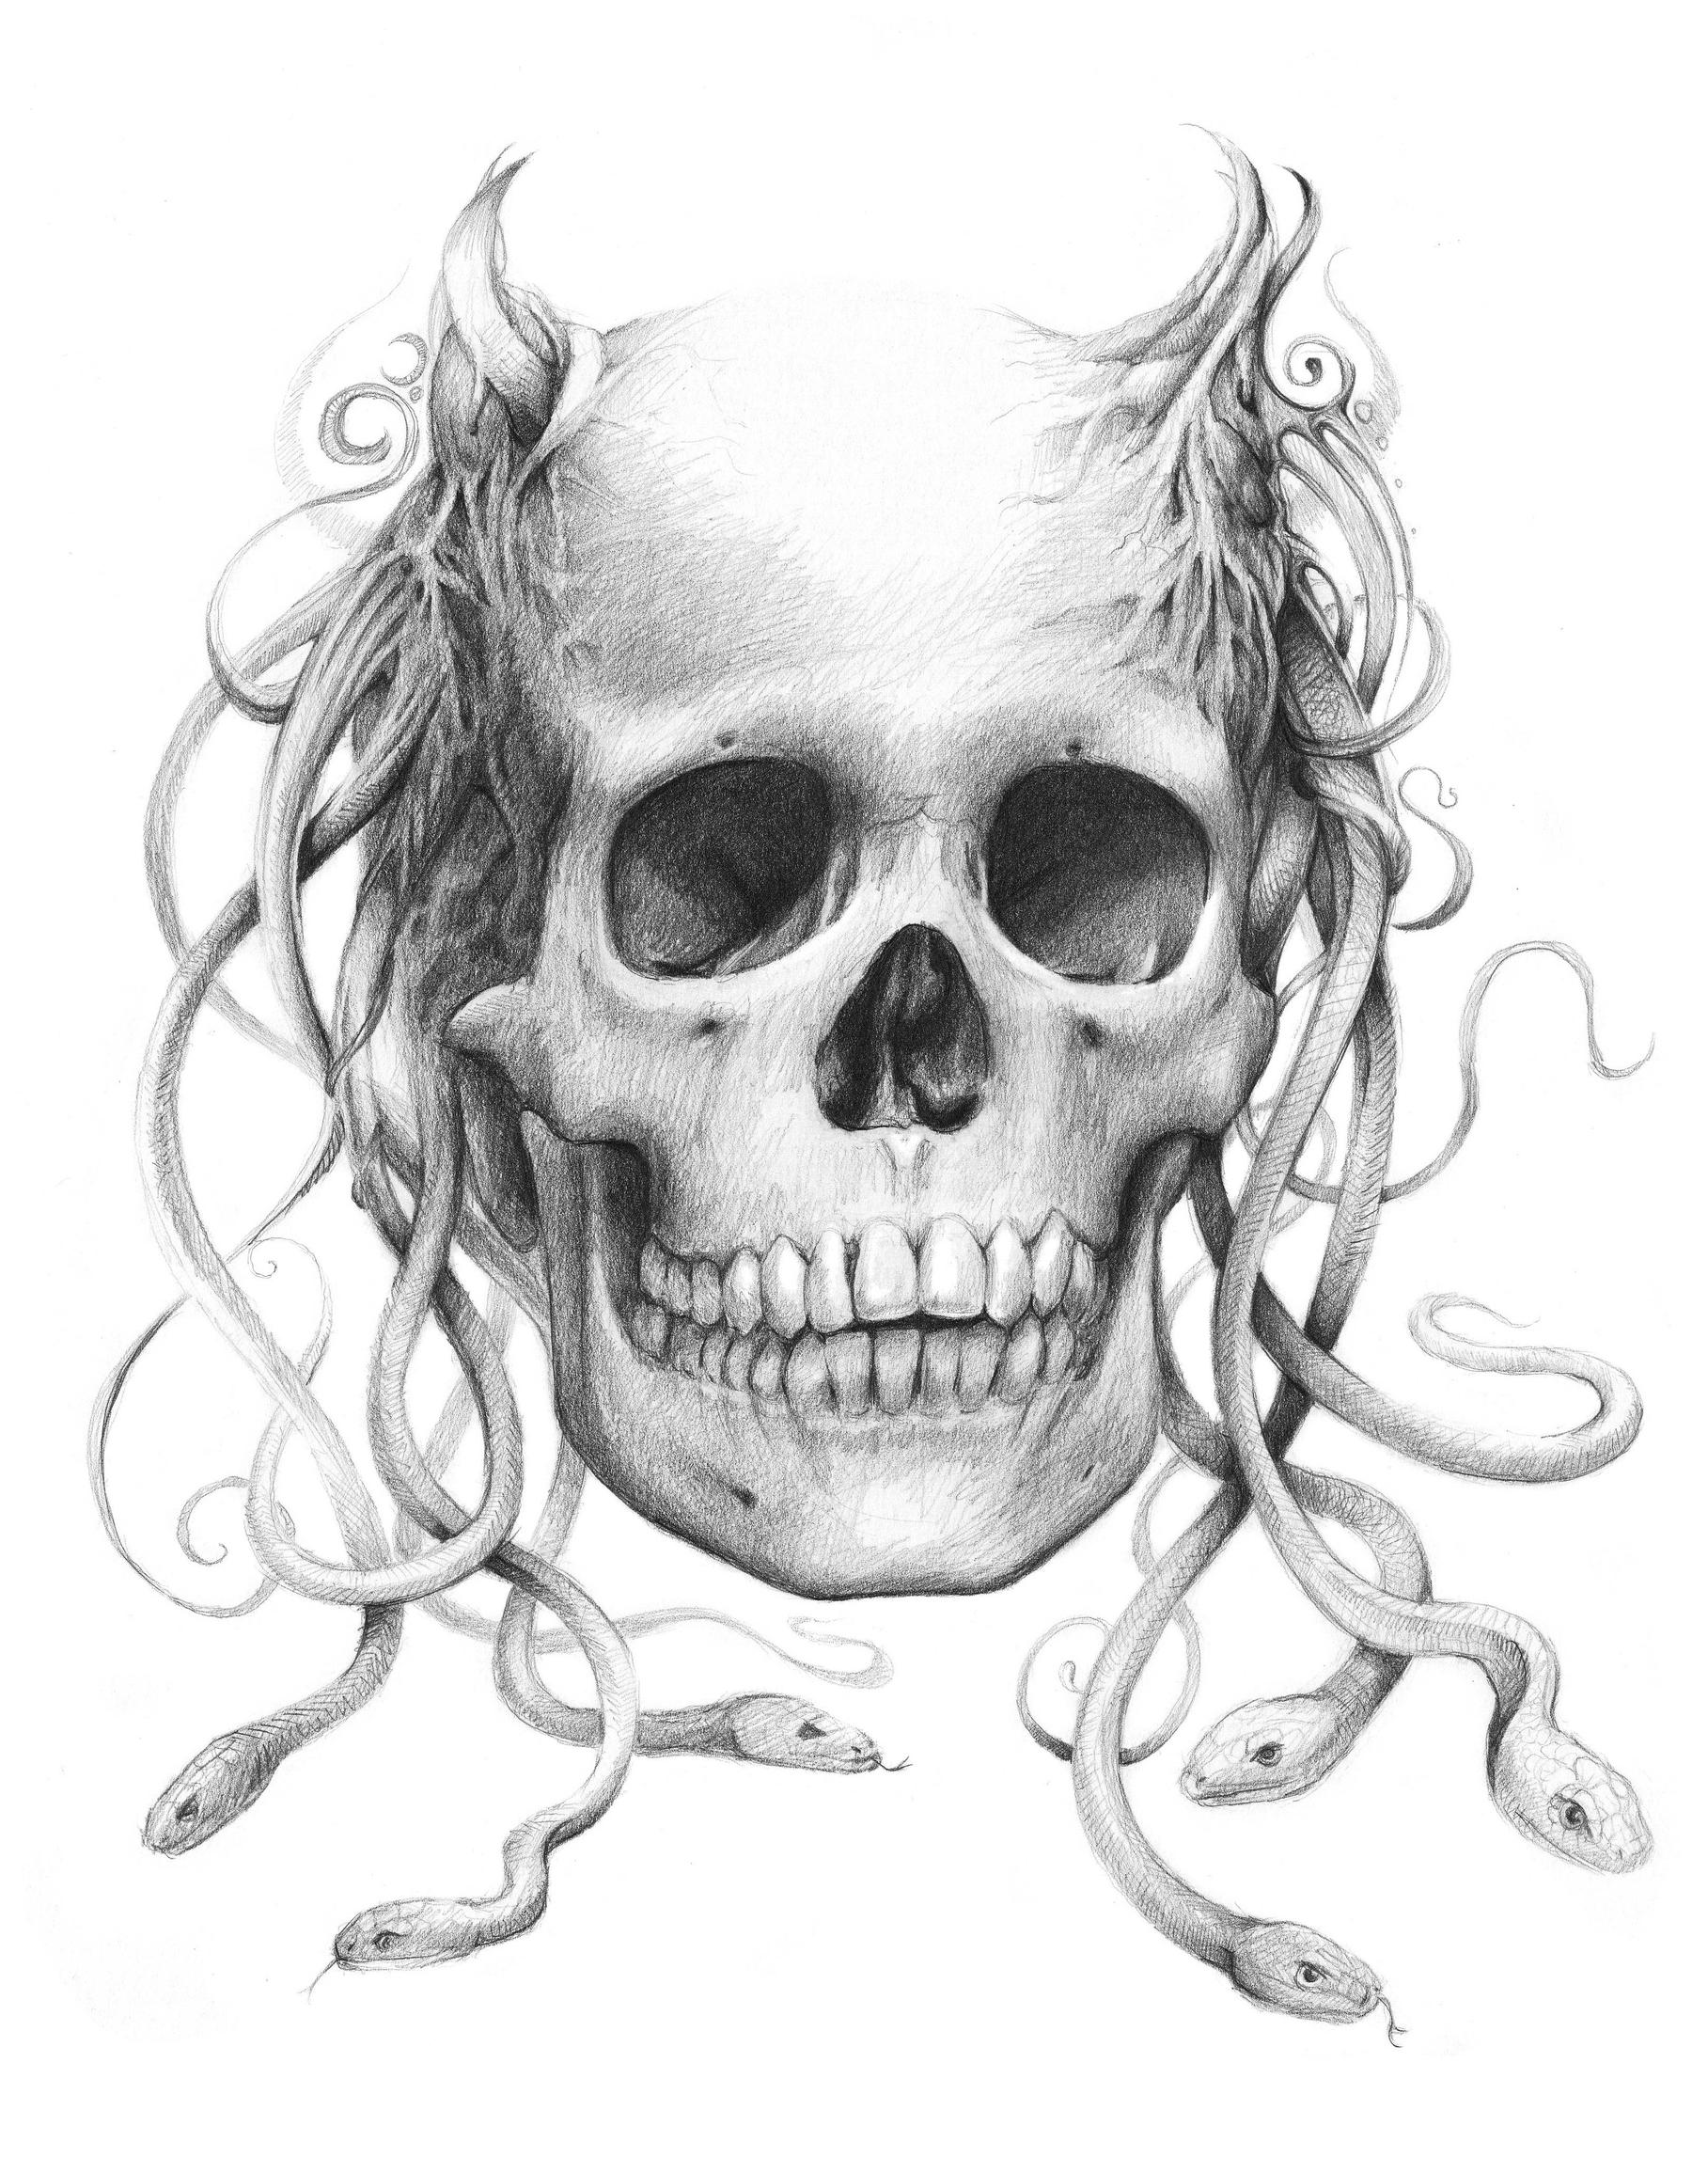 the best free medusa drawing images download from 300 free drawings of medusa at getdrawings